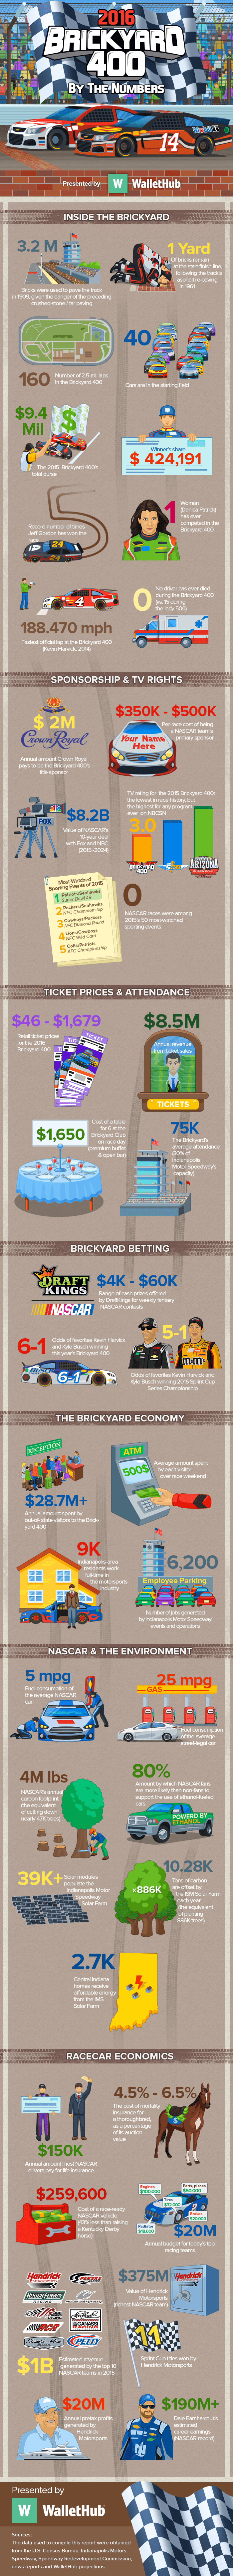 Brickyard-400-by-the-numbers-work-fix-v5-min